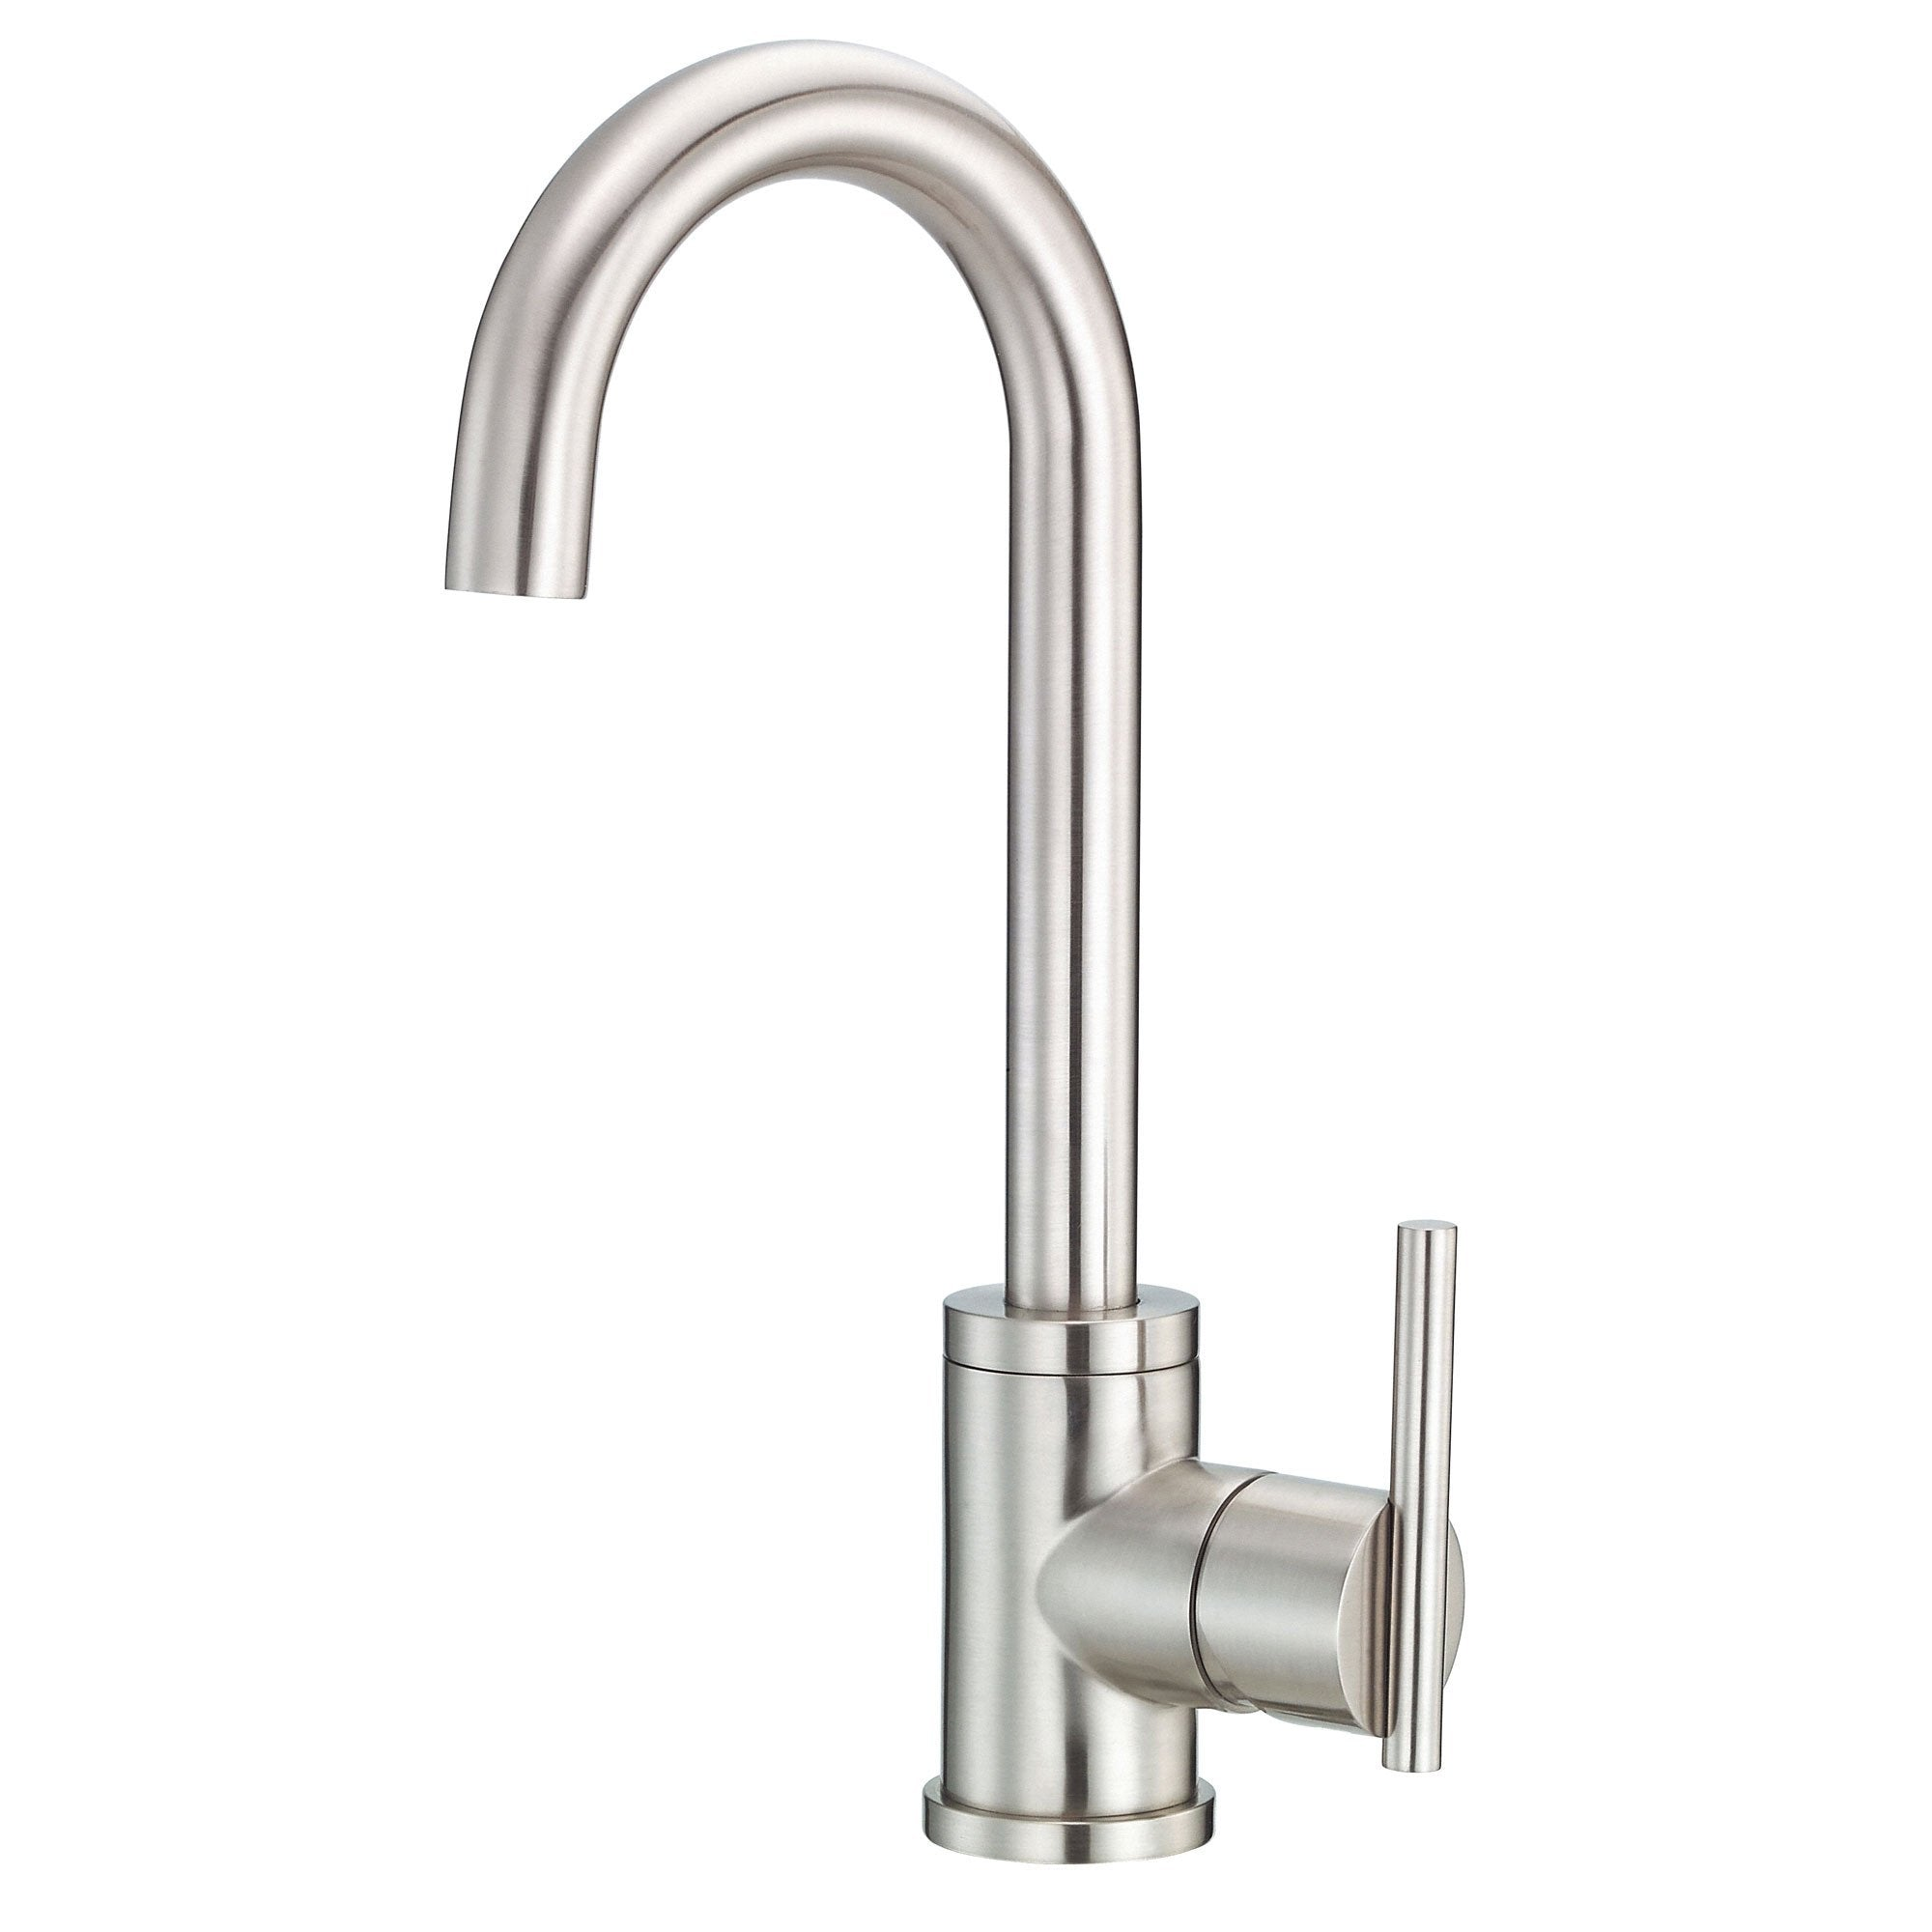 Danze Parma Stainless Steel Single Side Lever Handle Bar Faucet